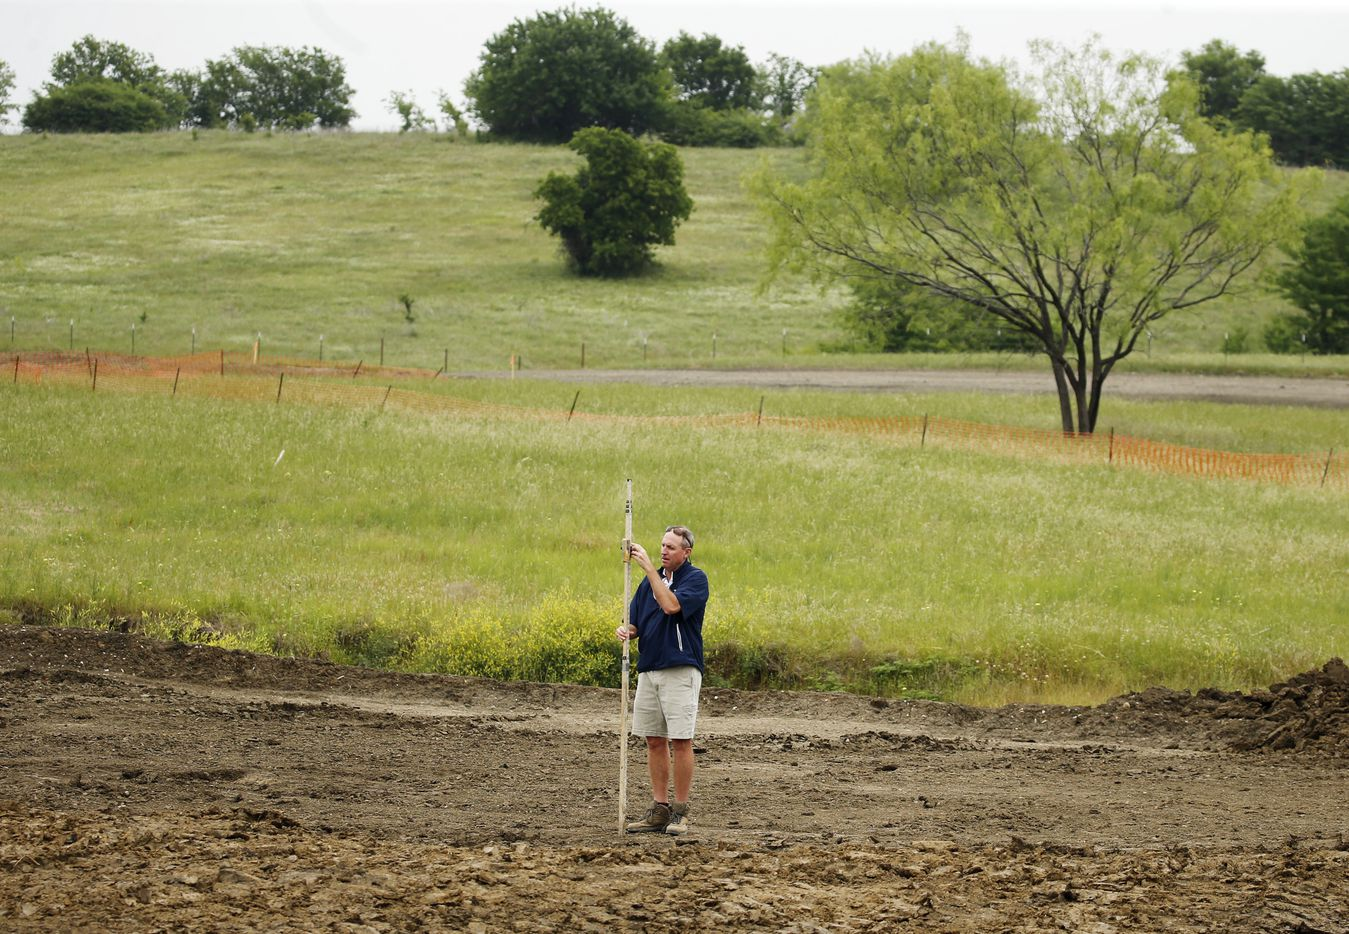 Design partner, Jim Wagner of Gil Hanse Design works on the 14th green of the East Course at PGA Frisco in Frisco, Texas, on Wednesday, May 20, 2020. The $520 million project is a mixed-use development that will be home to the PGA of America headquarters and two championship golf courses.